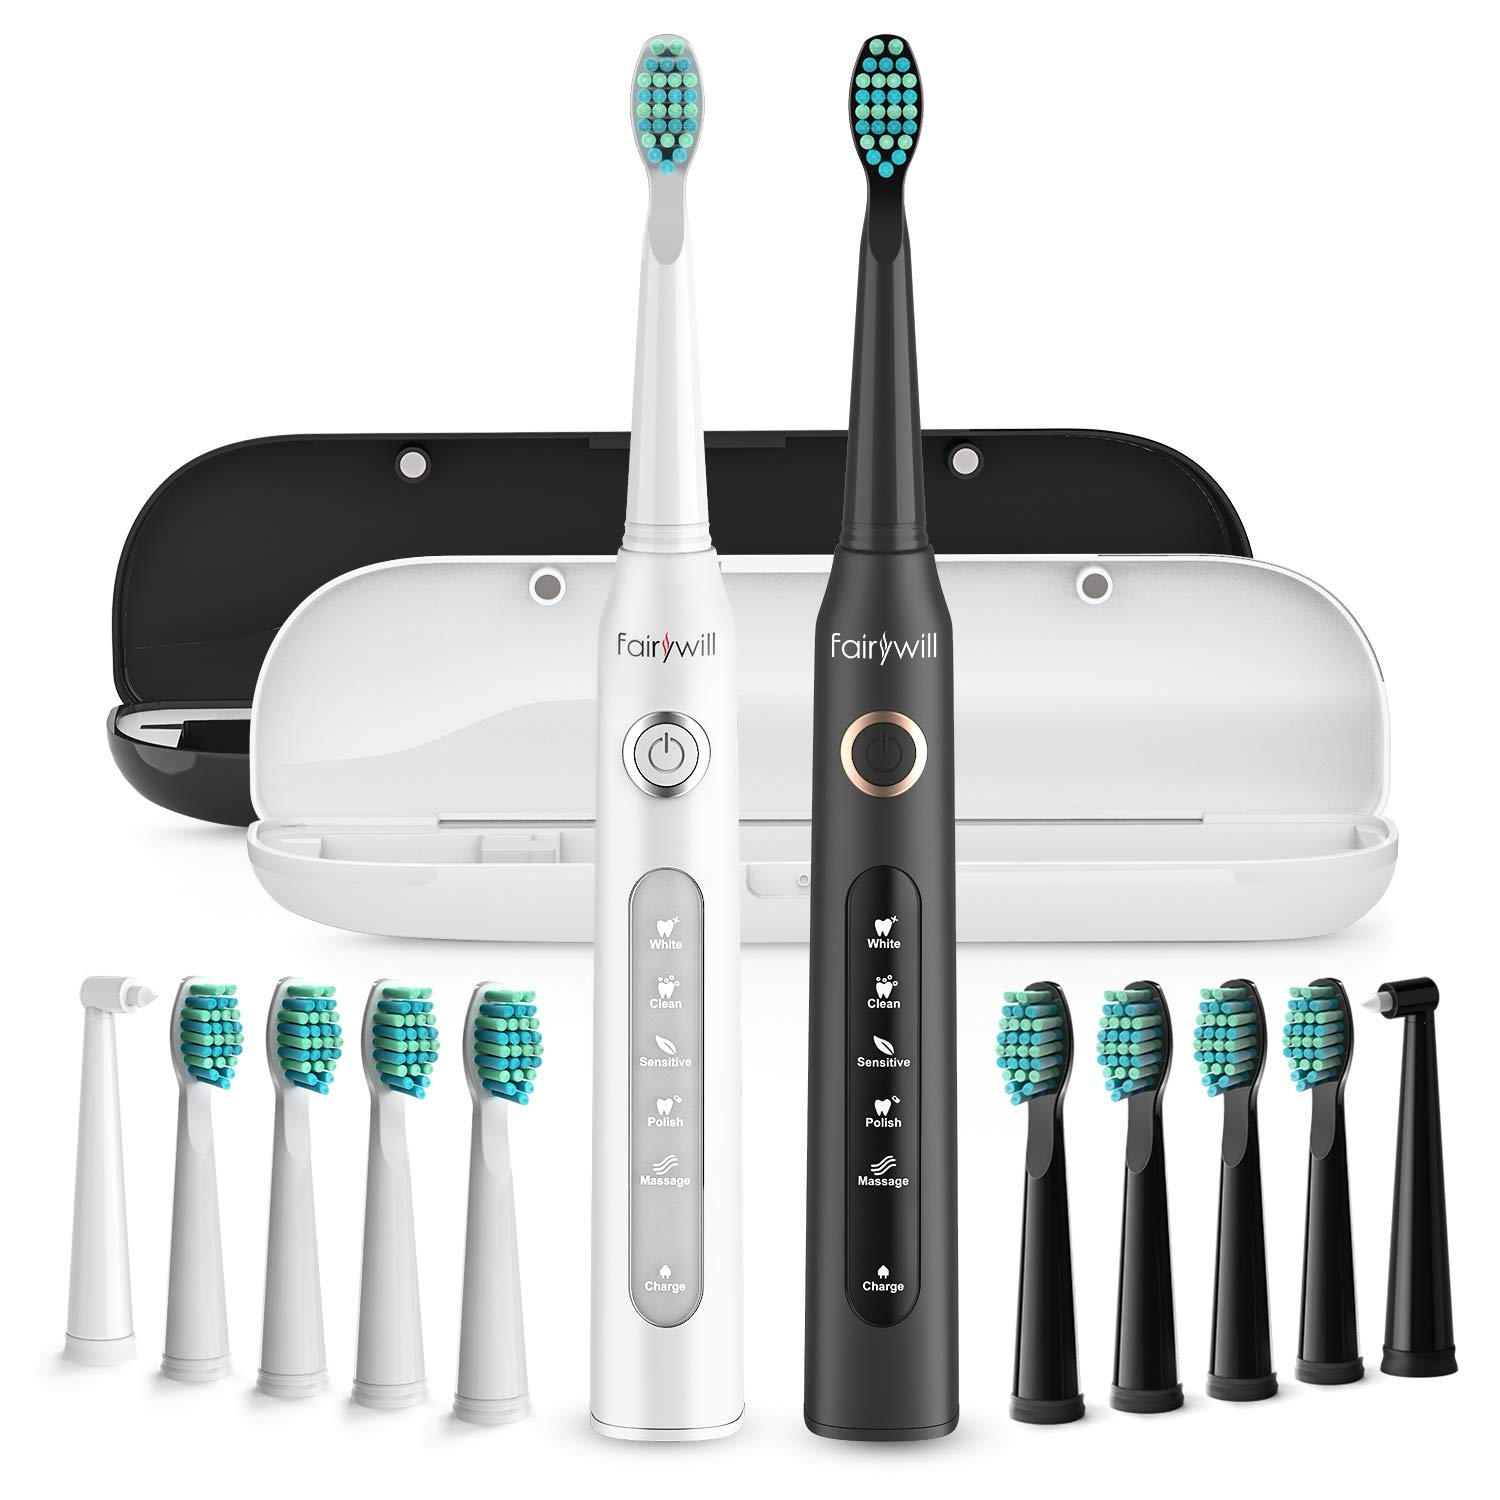 Fairywill Dual Sonic Powered Electric Toothbrush - Get A Dentist Like Clean With 5 Modes, Smart Timer, 10 Brush Heads & 2 Travel Cases, Rechargeable with One 4 hr Charge Lasting 30 Days